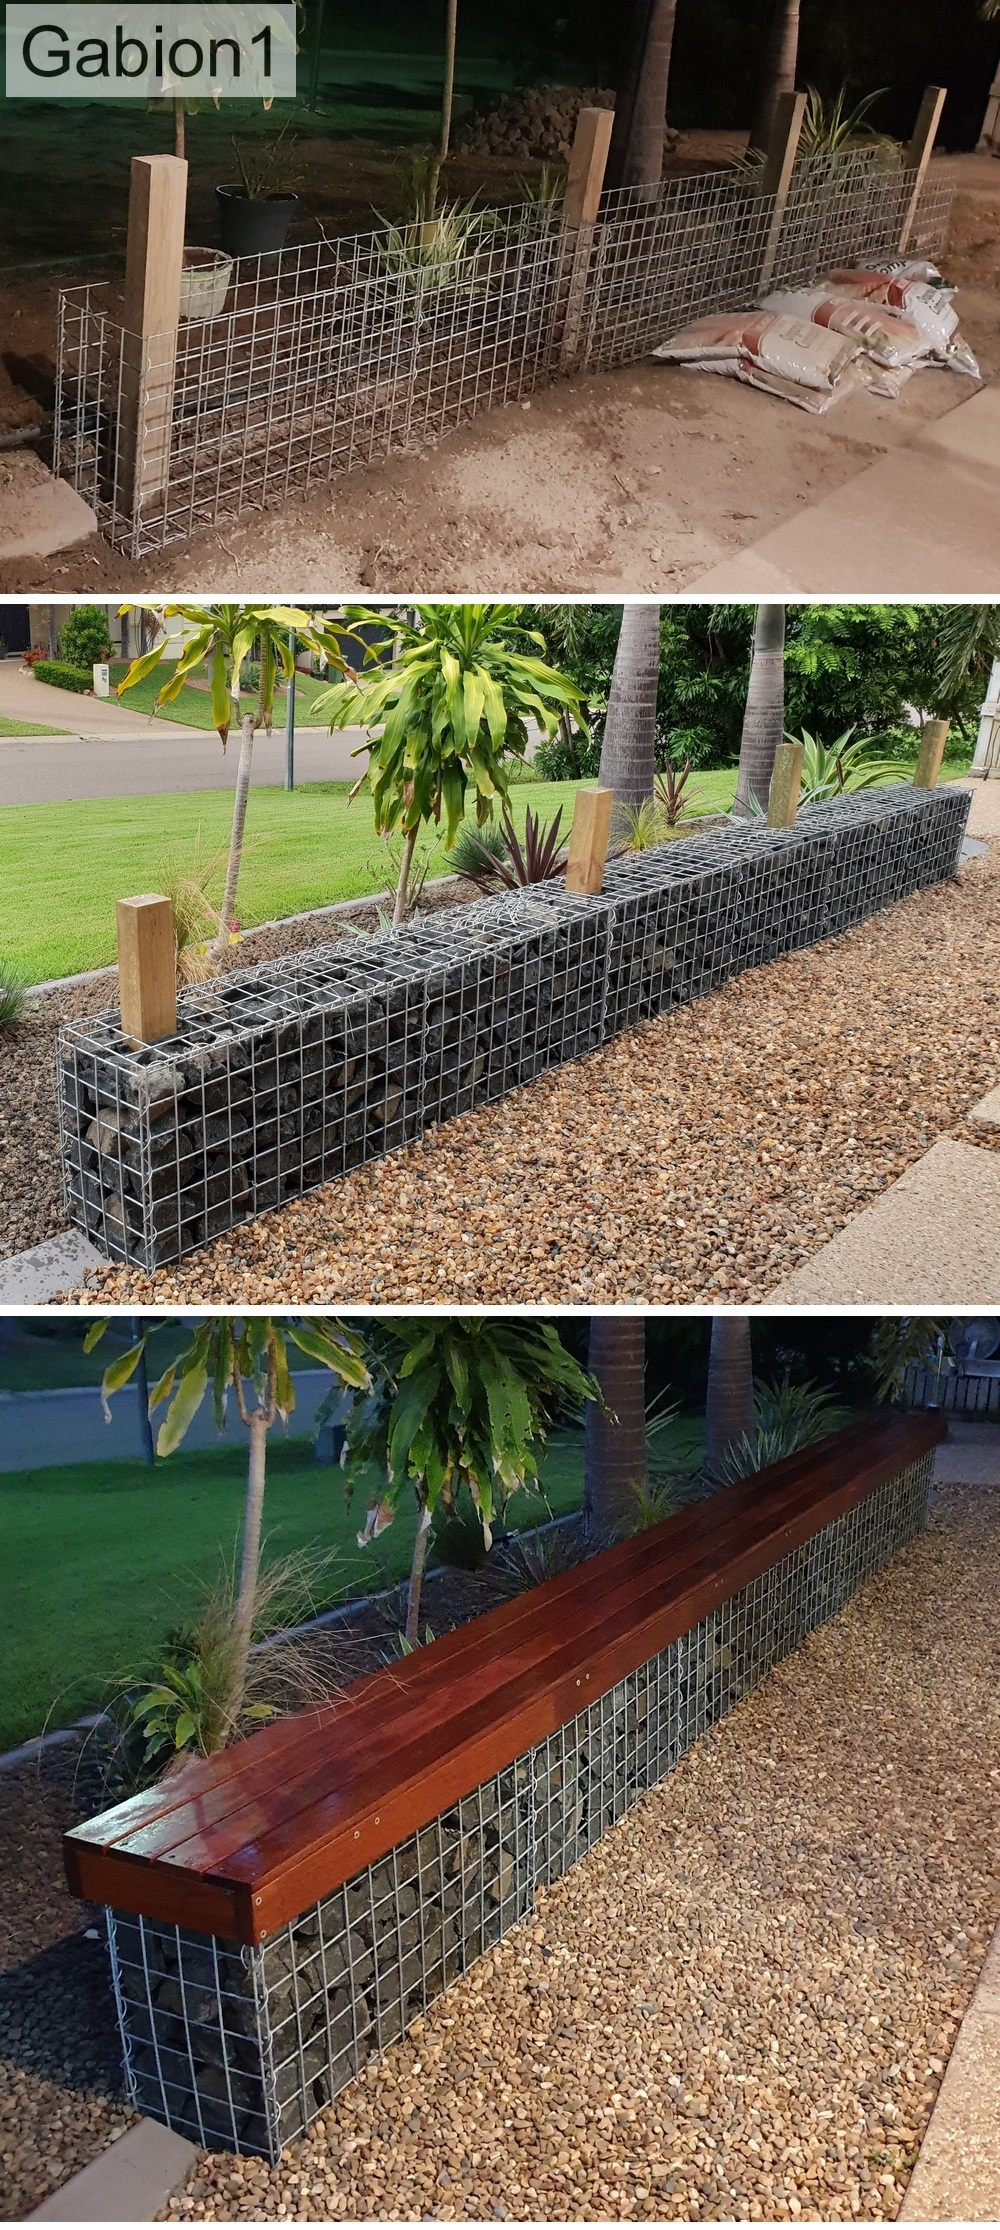 gabion seat construction